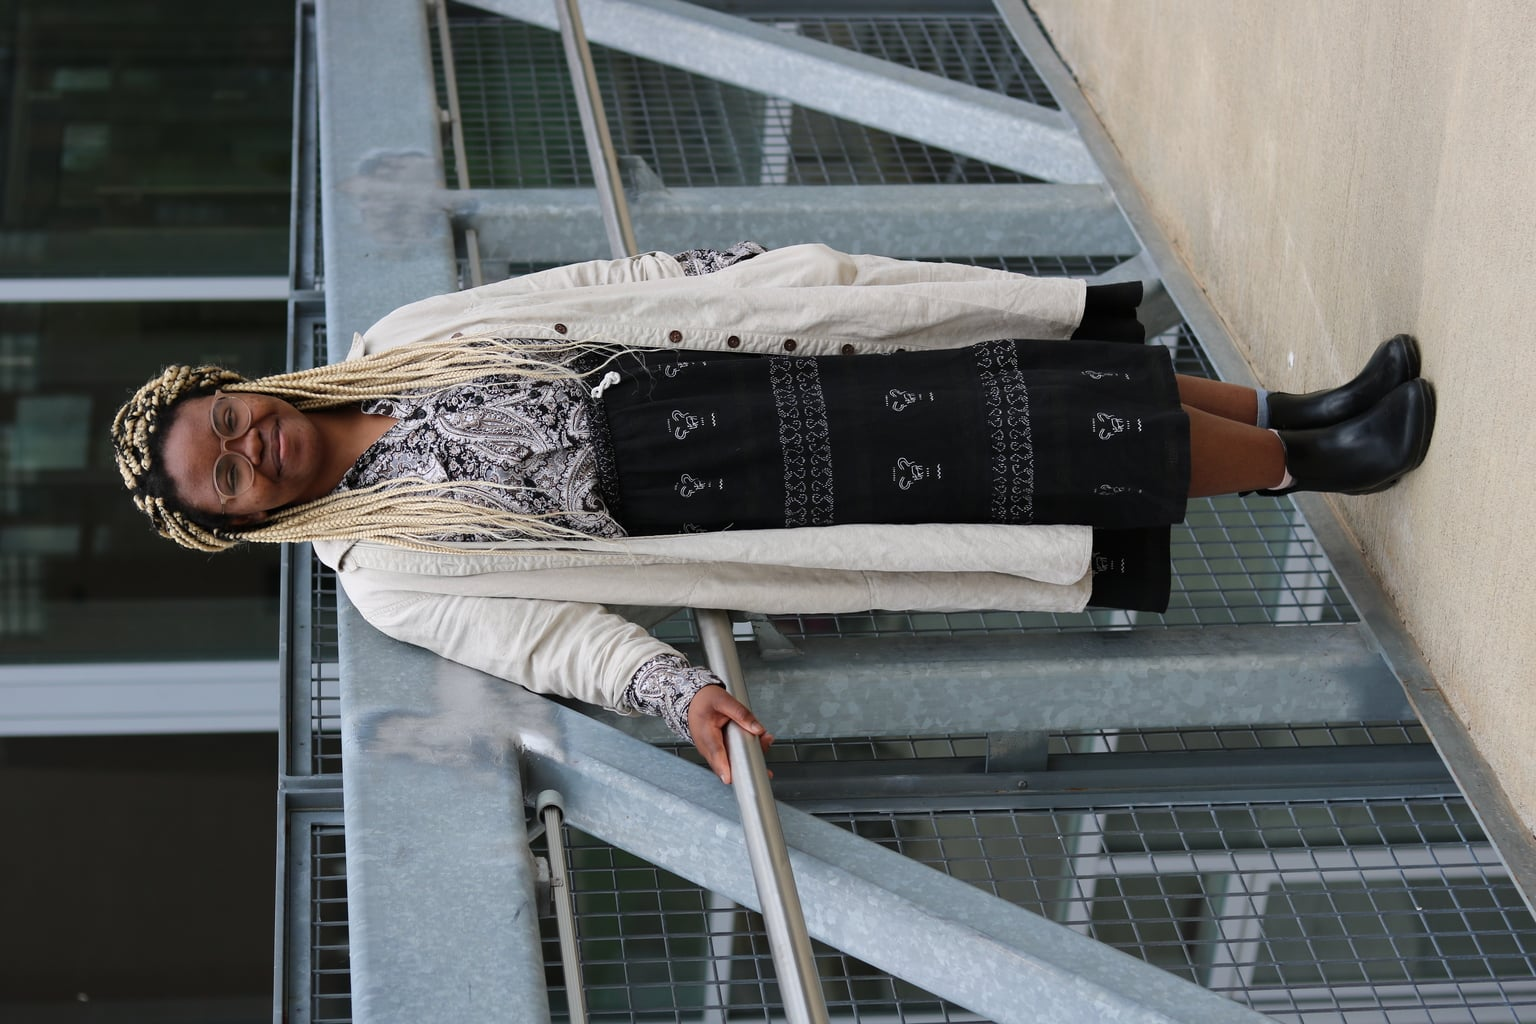 UMass Amherst student Cynthia wears a white and black long sleeve paisley button-up collared shirt tucked into a flowy bohemian midiskirt with delicate white stitching. She pairs it with a long canvas tan trench coat and flat rain boots.